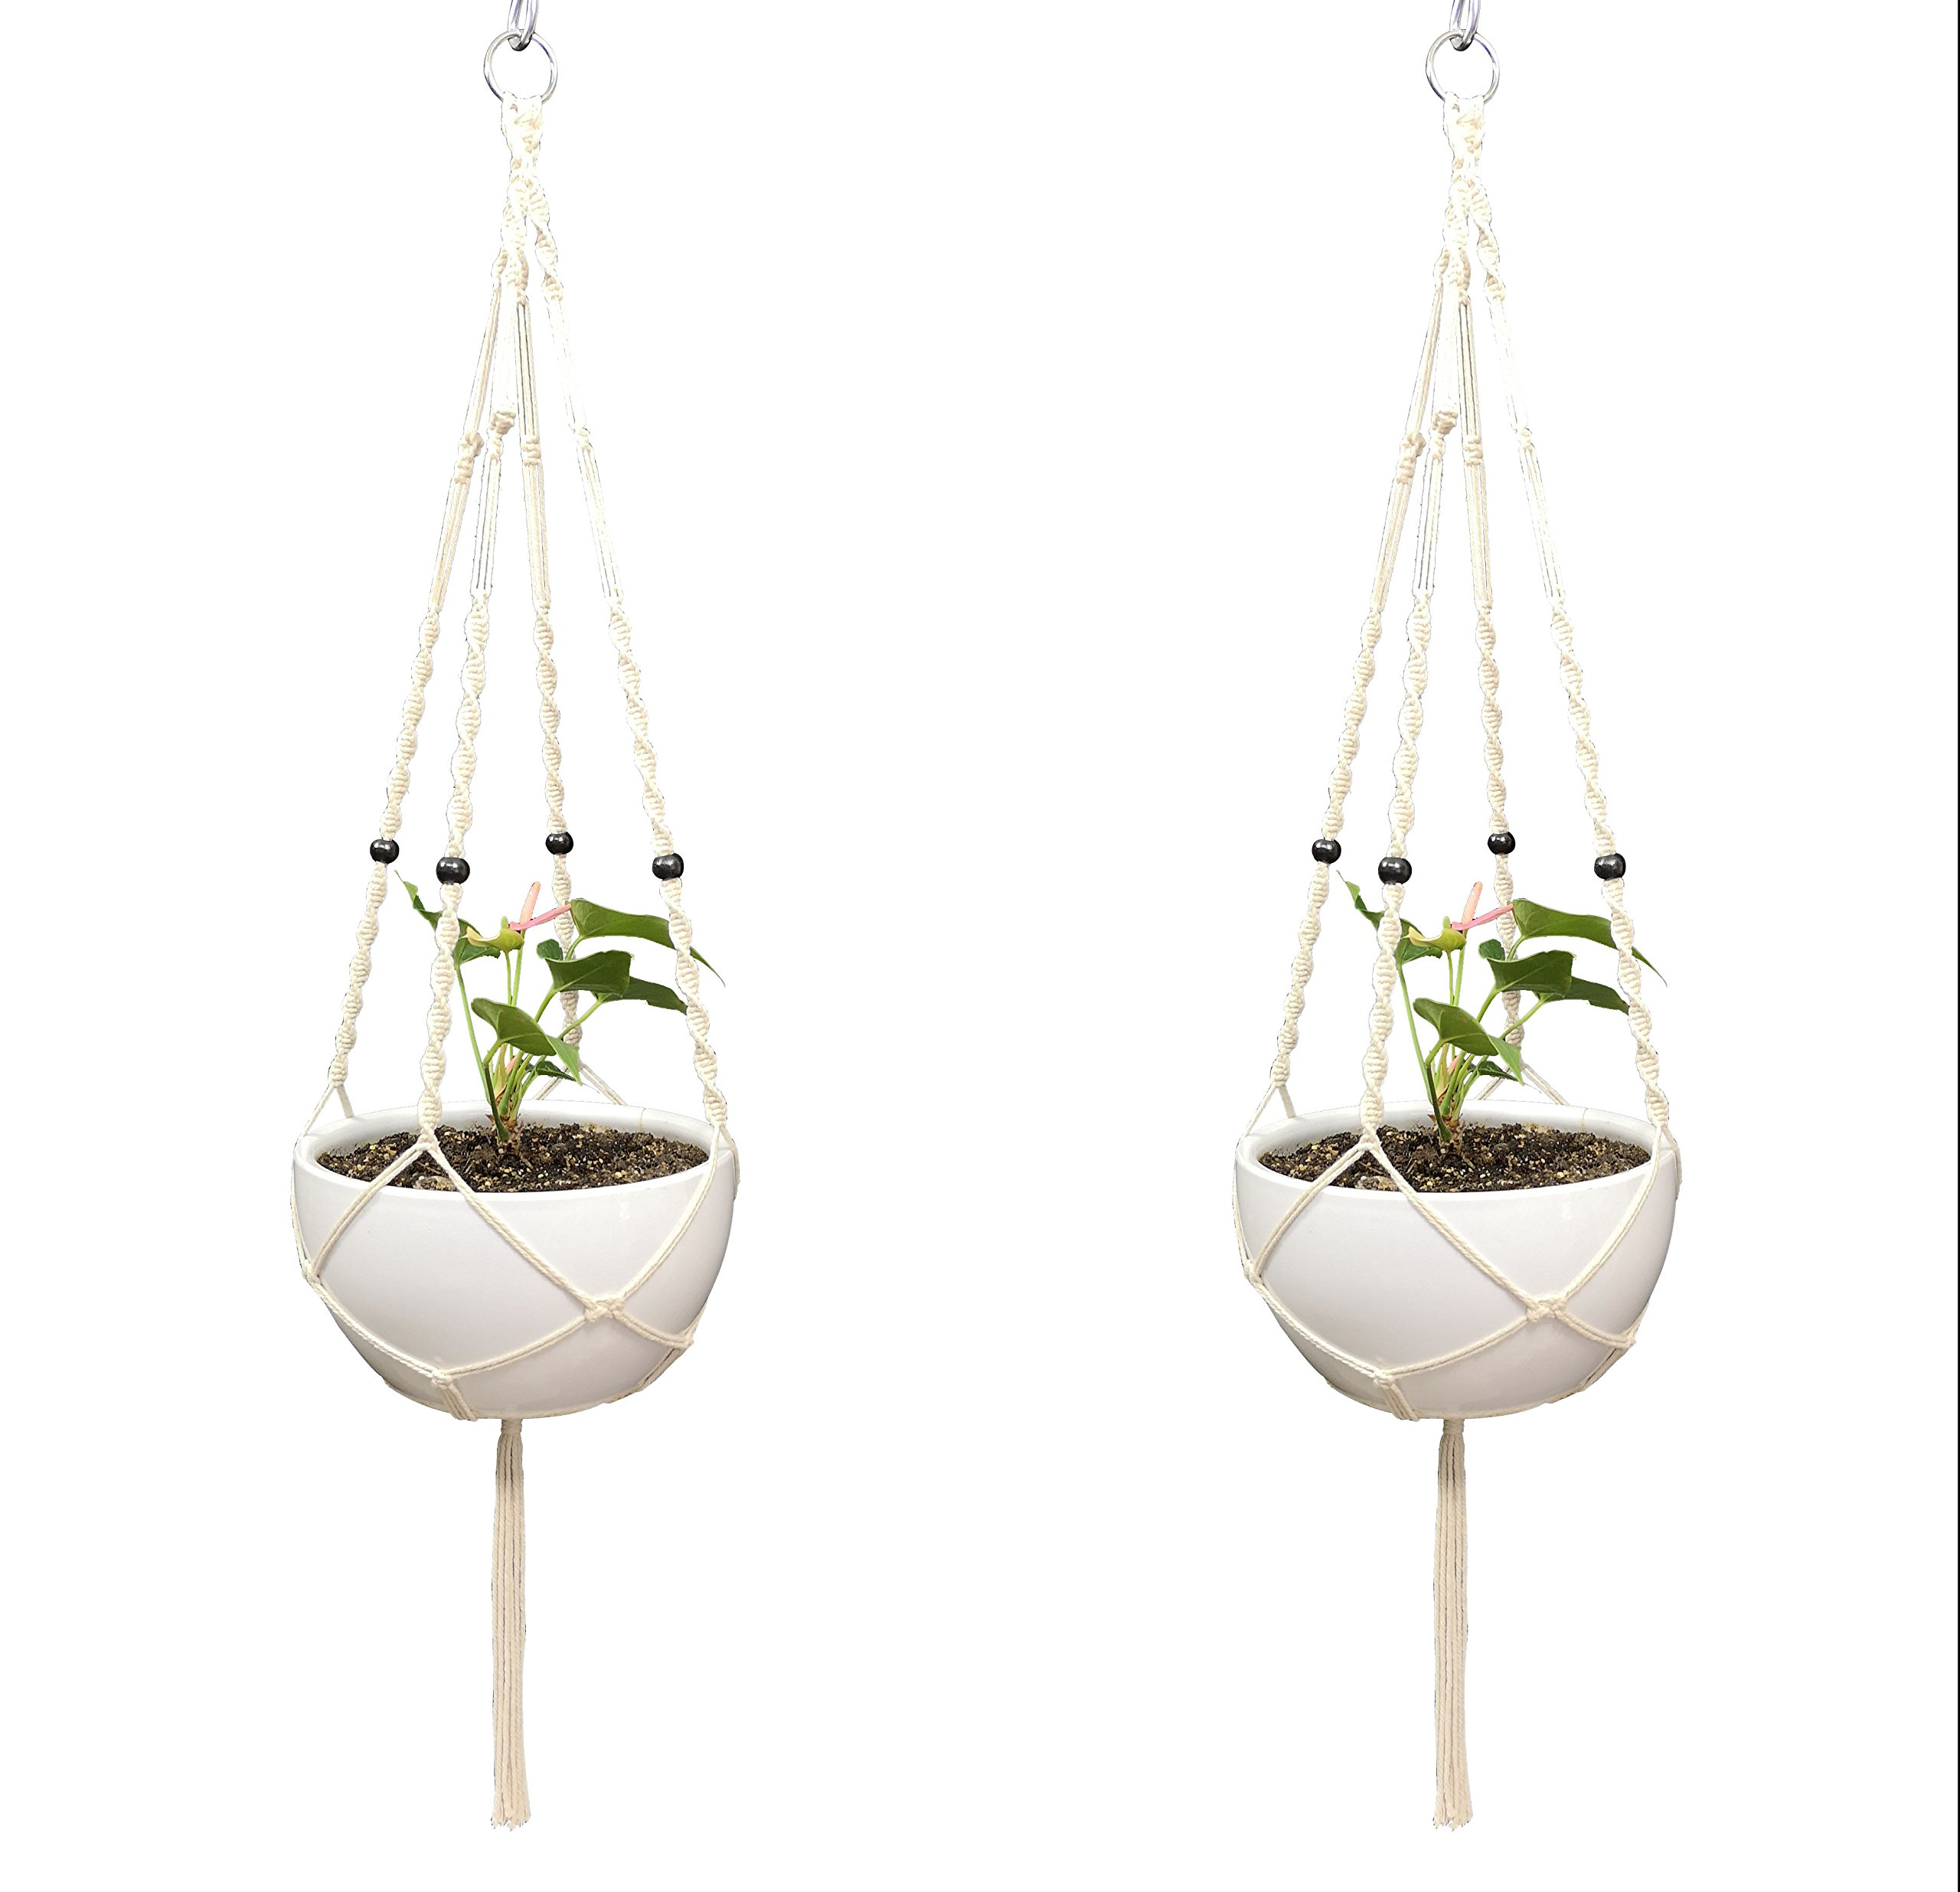 2 PCS Plant Hanger Macrame Cotton 4 Legs 48 inches for Indoor Outdoor, Living Room, Kitchen, Deck, Patio, High and Low Ceiling and Fits Round & Square Pots with Size of 10-12 inches Without The Pot